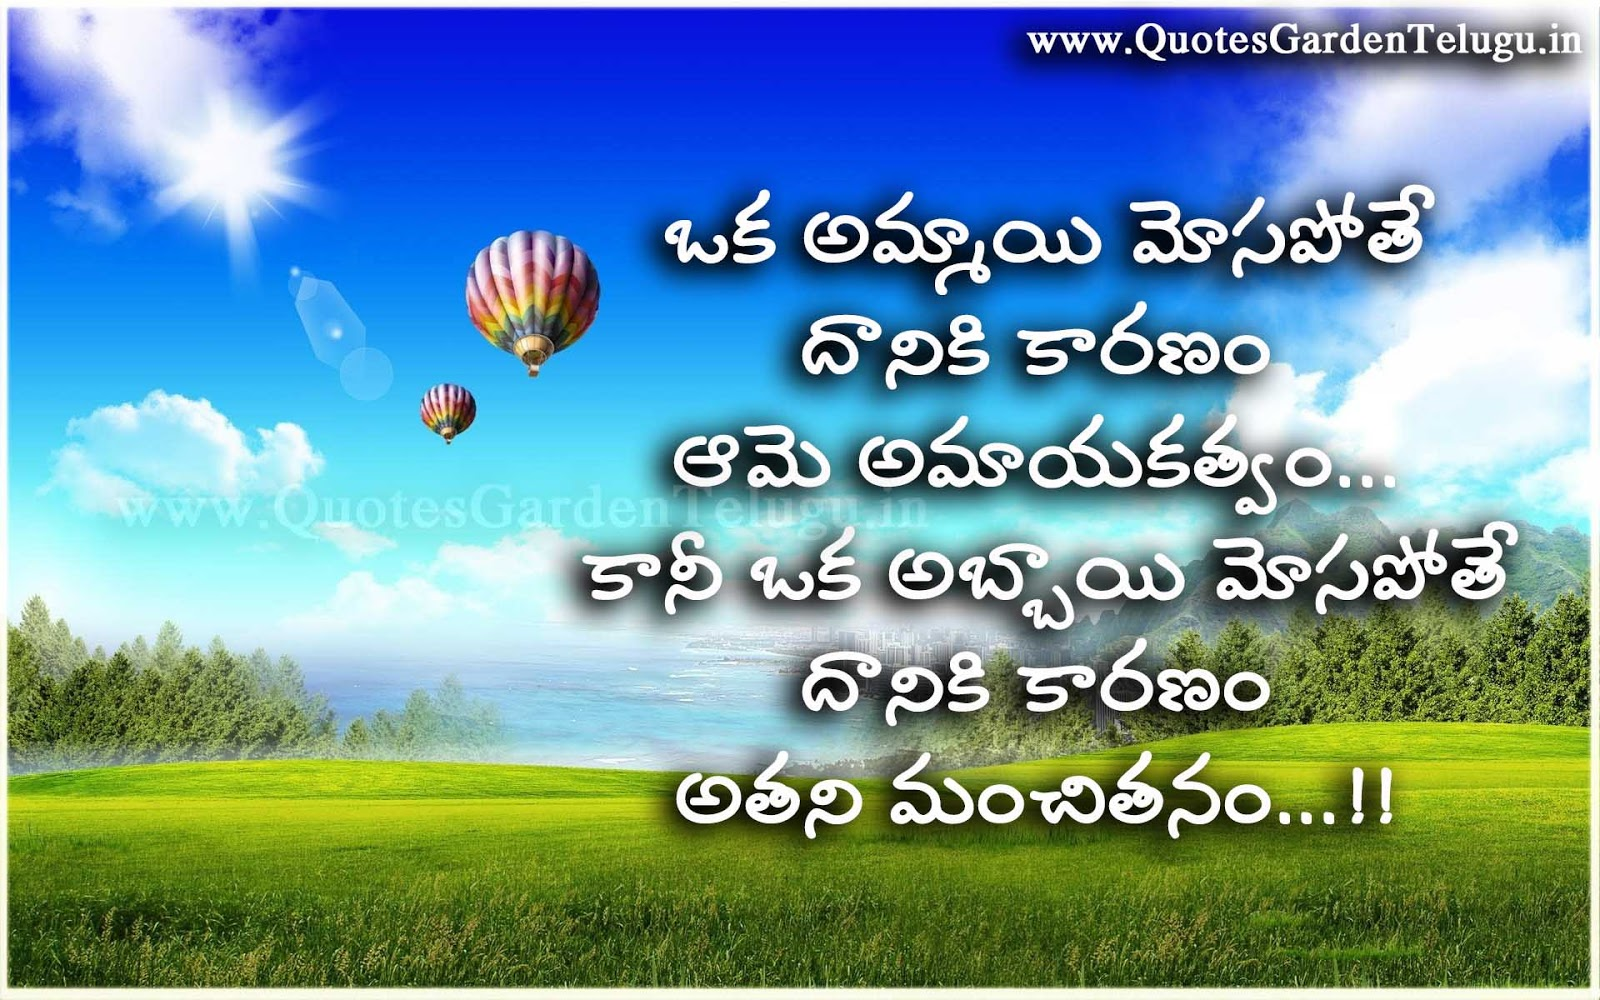 Love Failure Quotes In Telugu Wallpapers: Telugu Love Failure Quotes For Boys And Girls